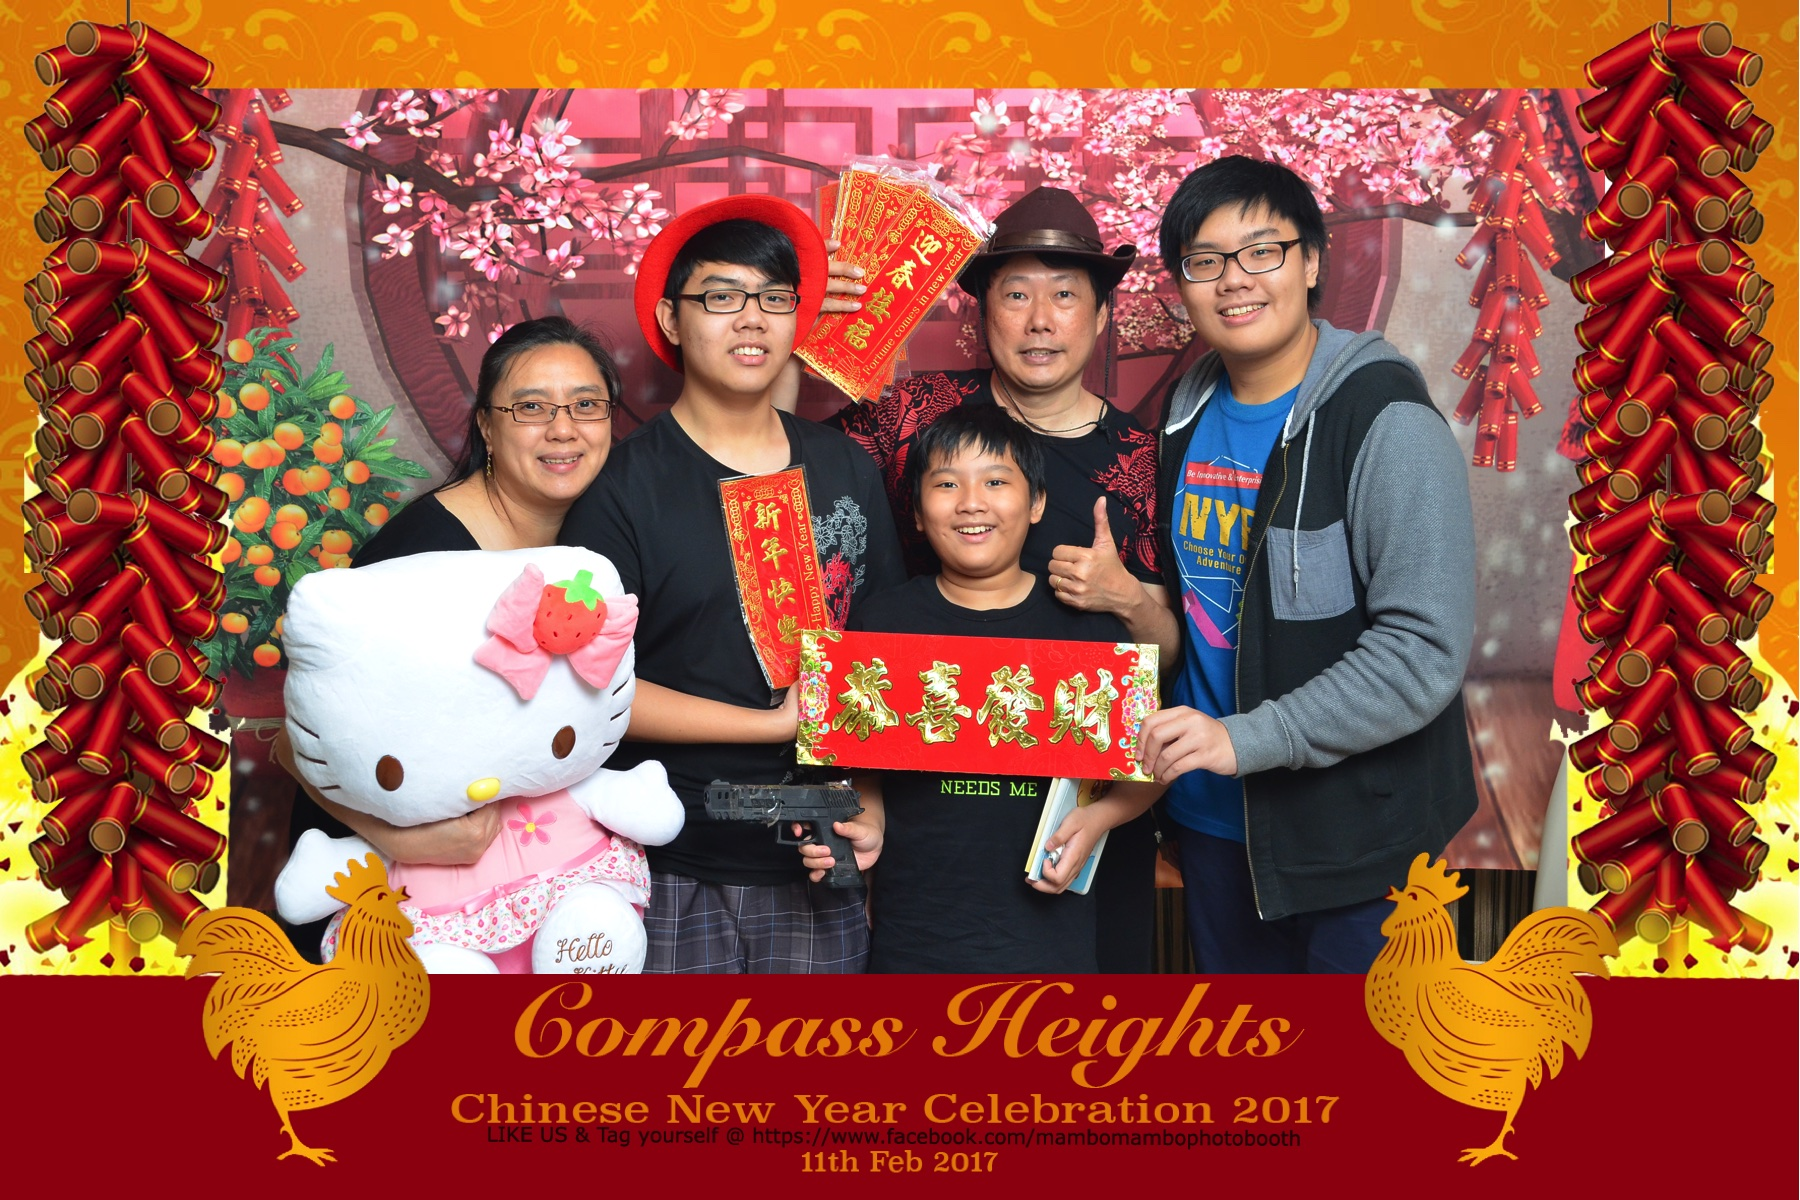 Singapore PhotoBooth Services